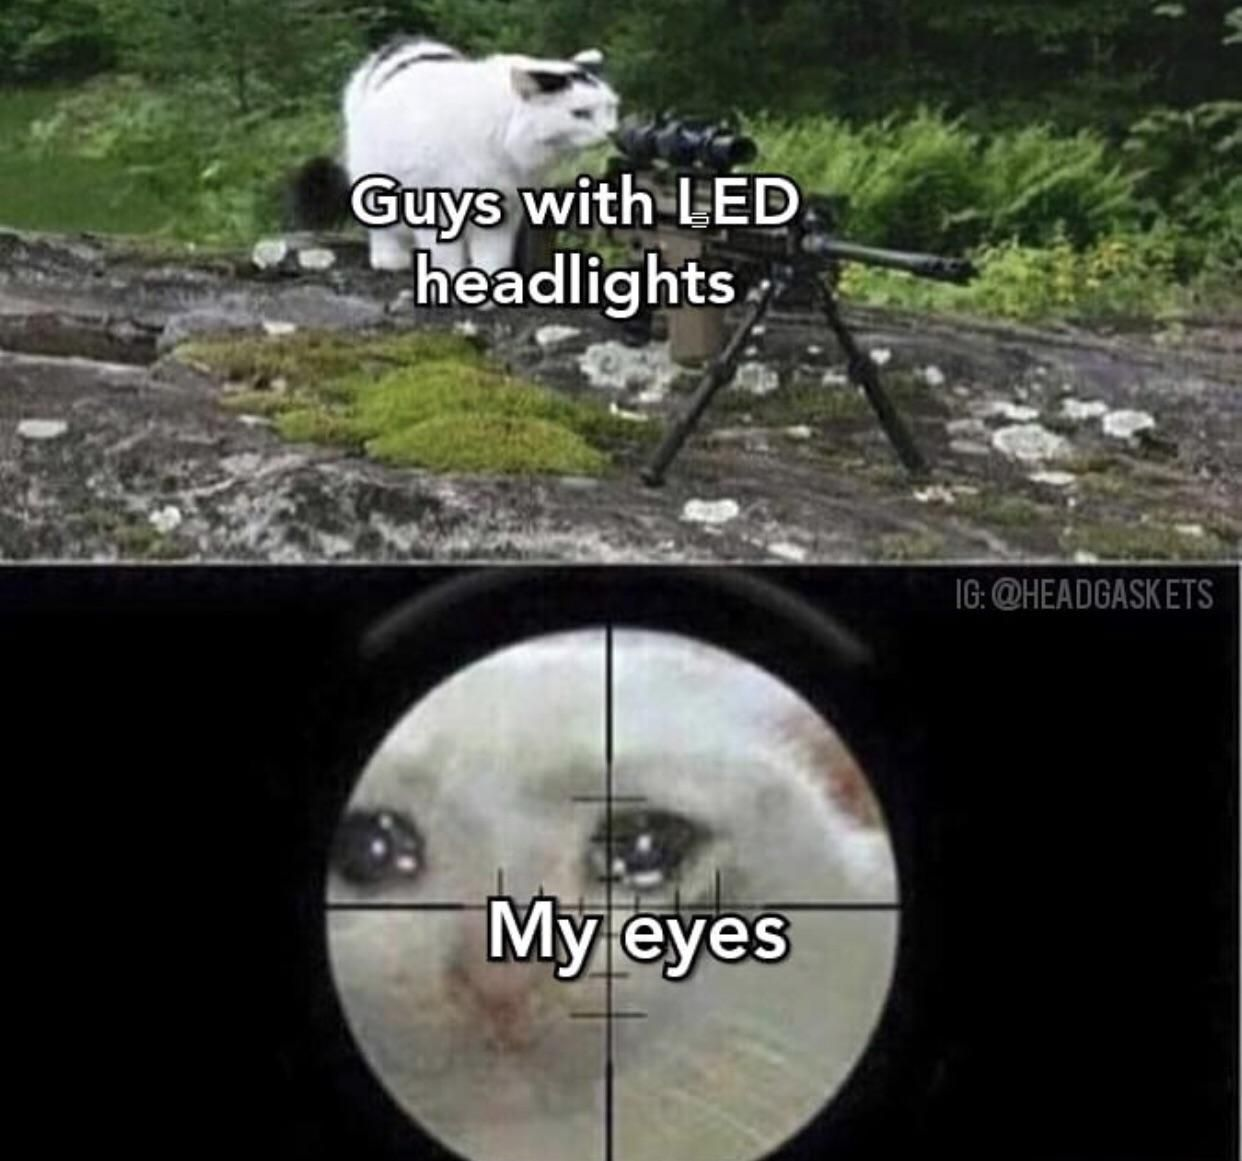 Seriously, I go blind every time